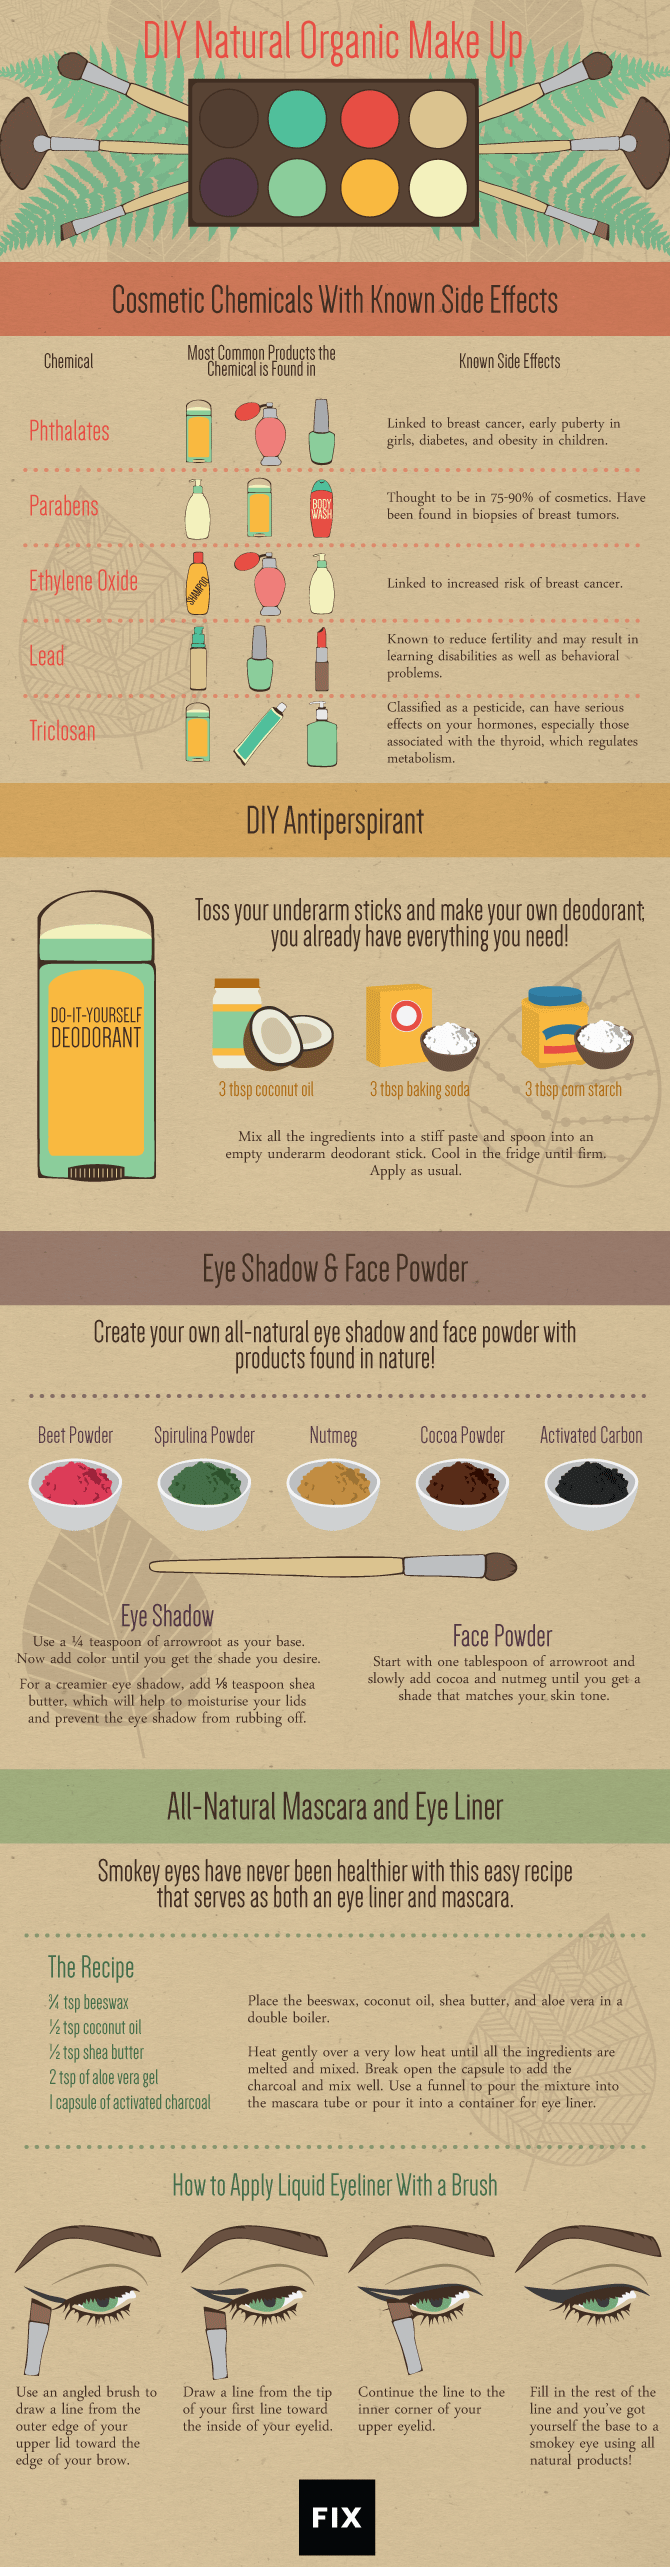 DIY Natural Organic Make Up Ideas And Recipes Infographic